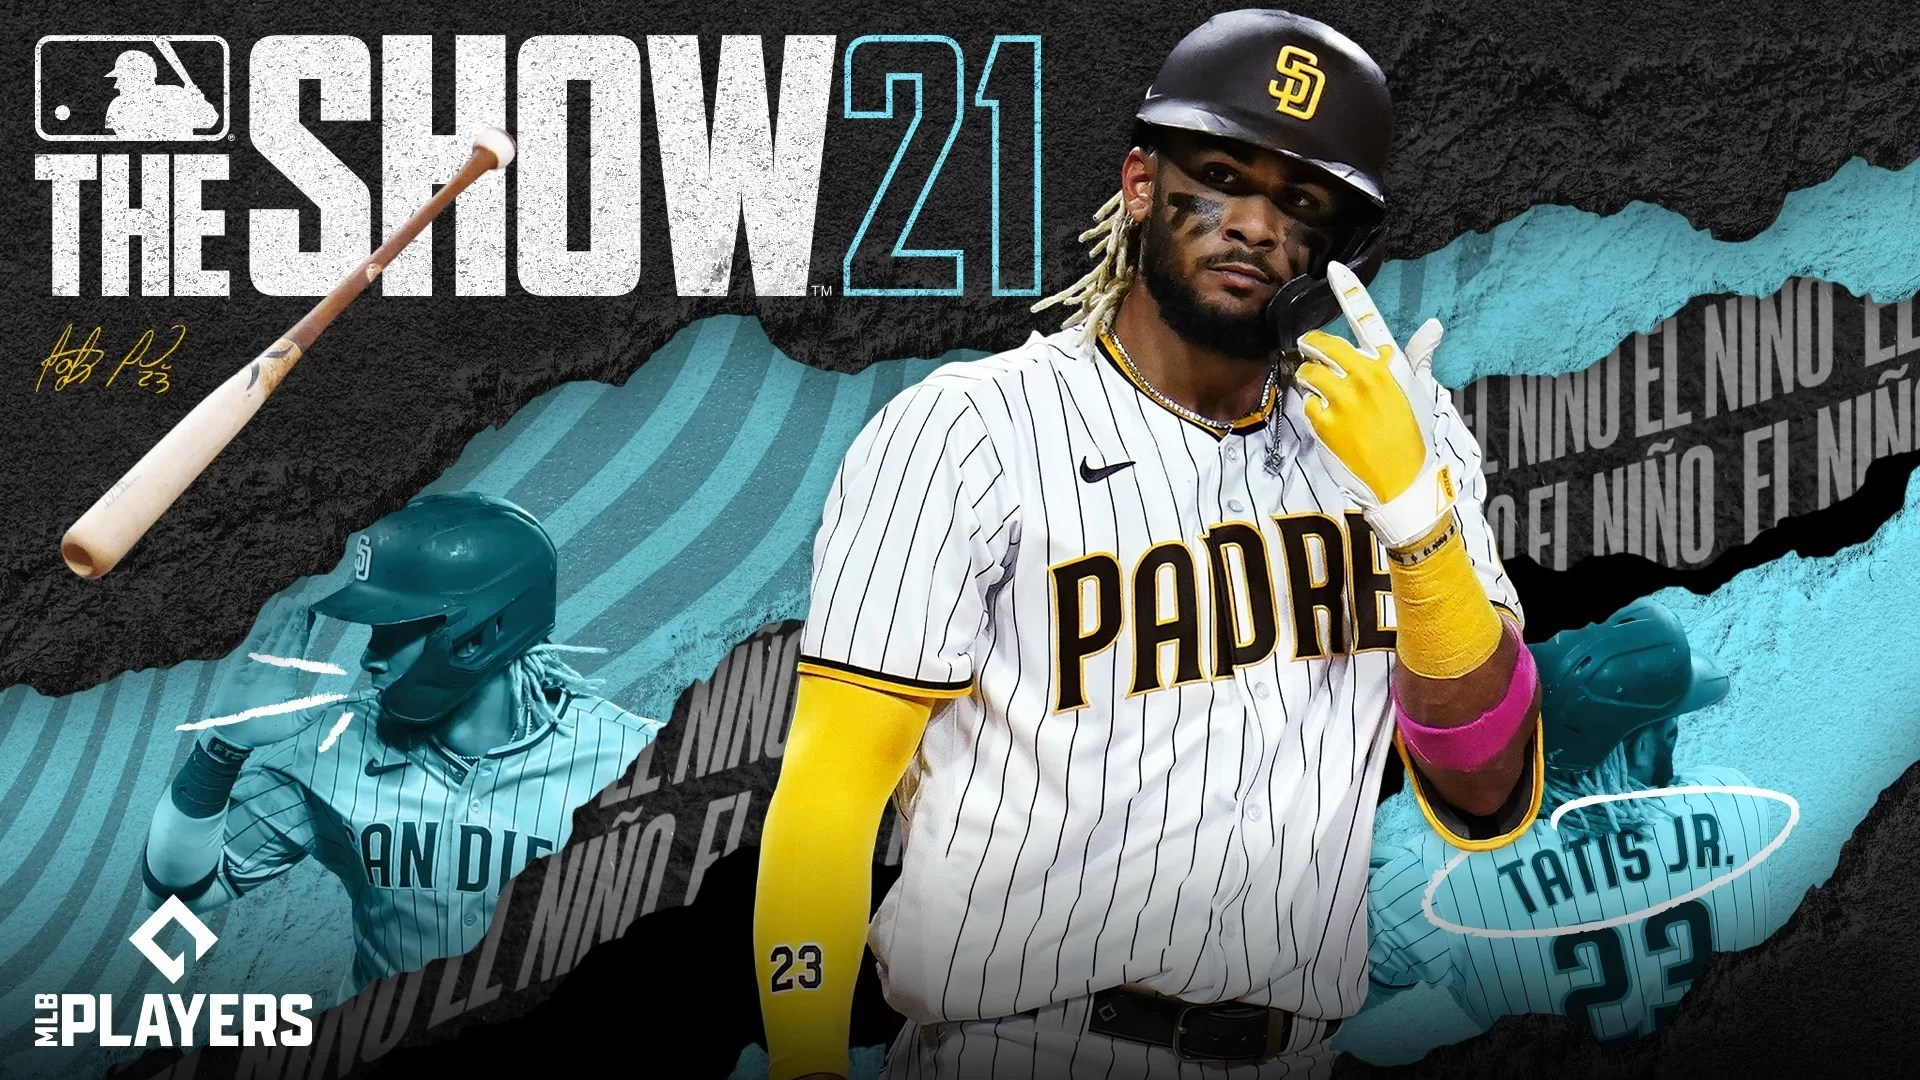 Xbox Game Pass Just Gets Better with Addition of GTA V + MLB The Show 21